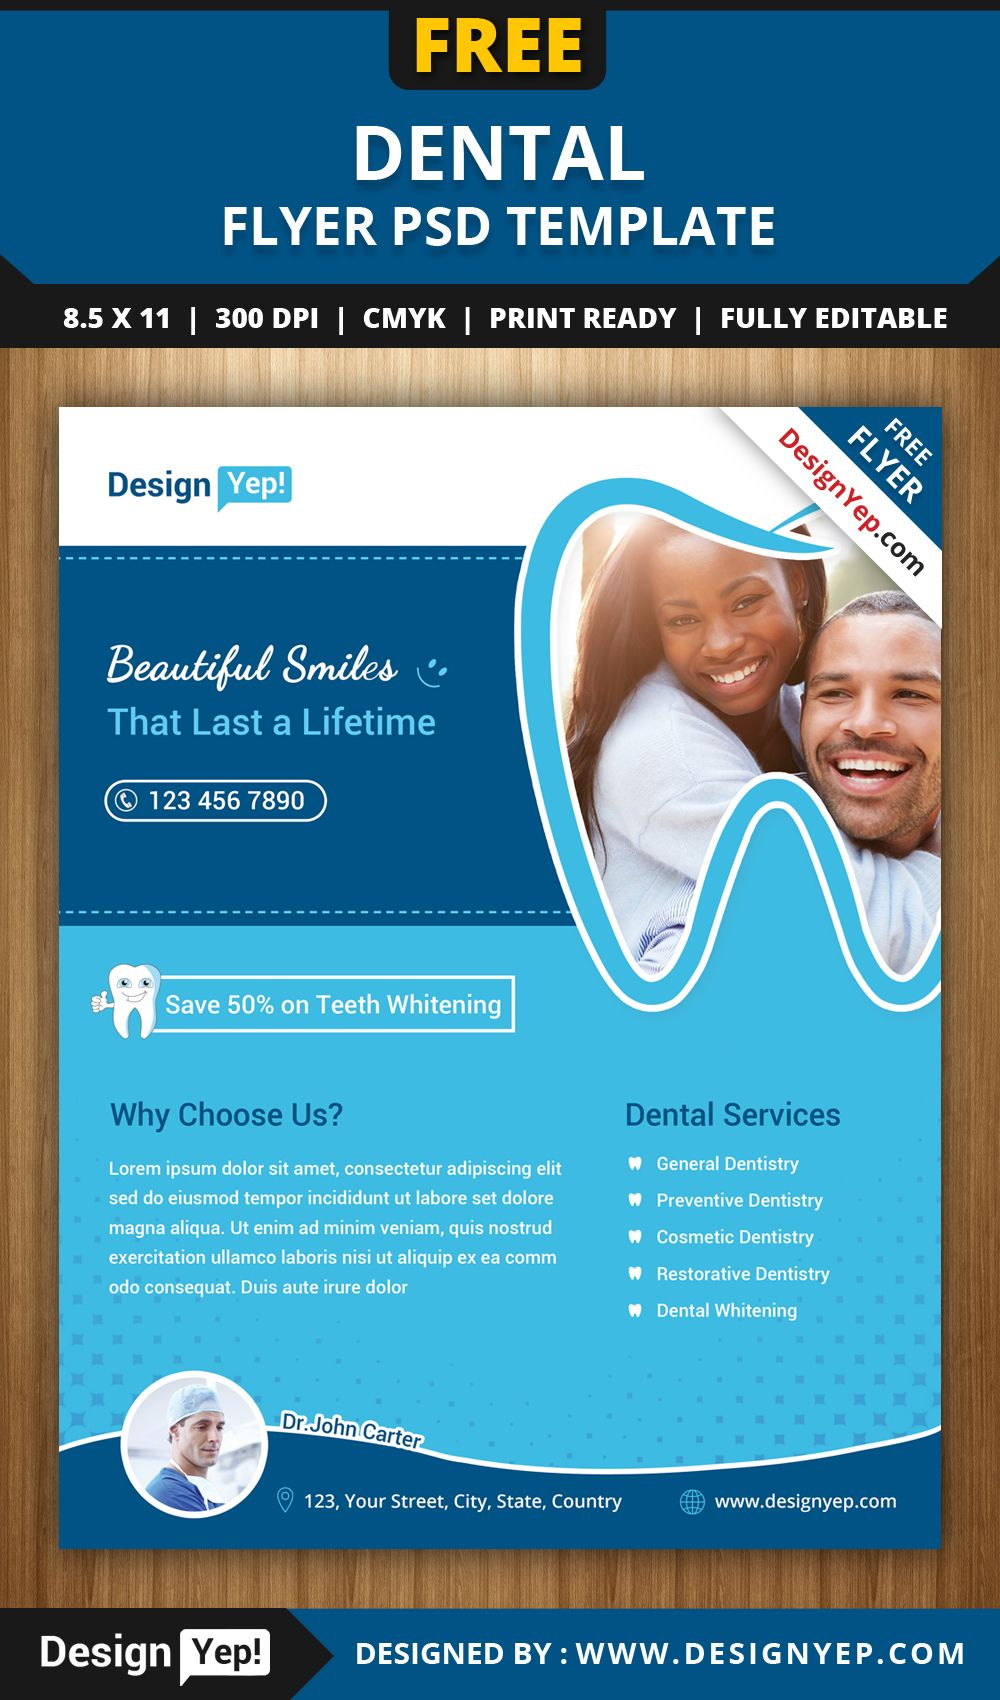 dental flyer psd template designyep flyers dental flyer psd template designyep